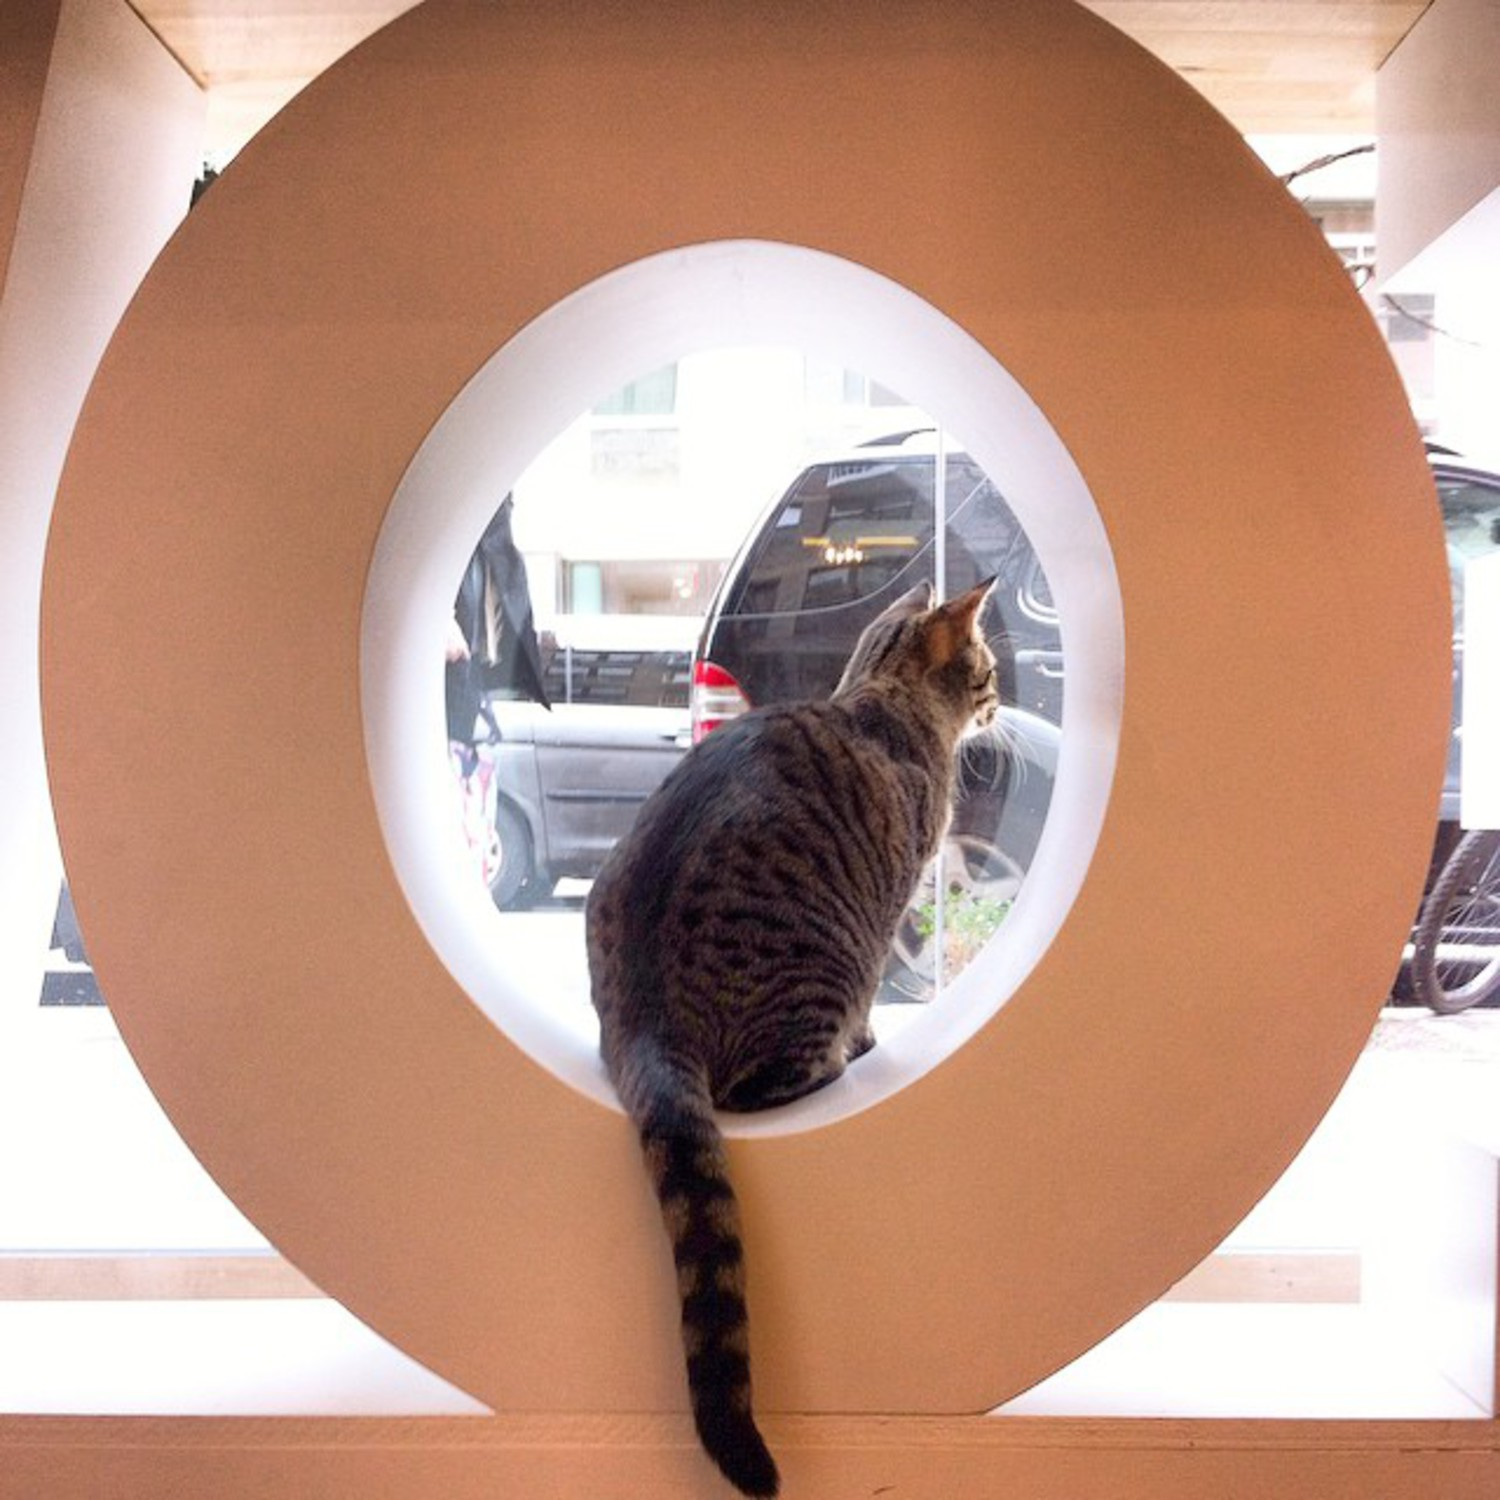 Kris is impatient to welcome our first customers tomorrow! Just a friendly reminder that due to overwhelming demand, we can only accept people who have made reservations. We will announce here when we are ready to start accepting walk-ins. Please keep checking our reservation page for last minute cancellations! #kittykind #catcafe #manhattan #nyc